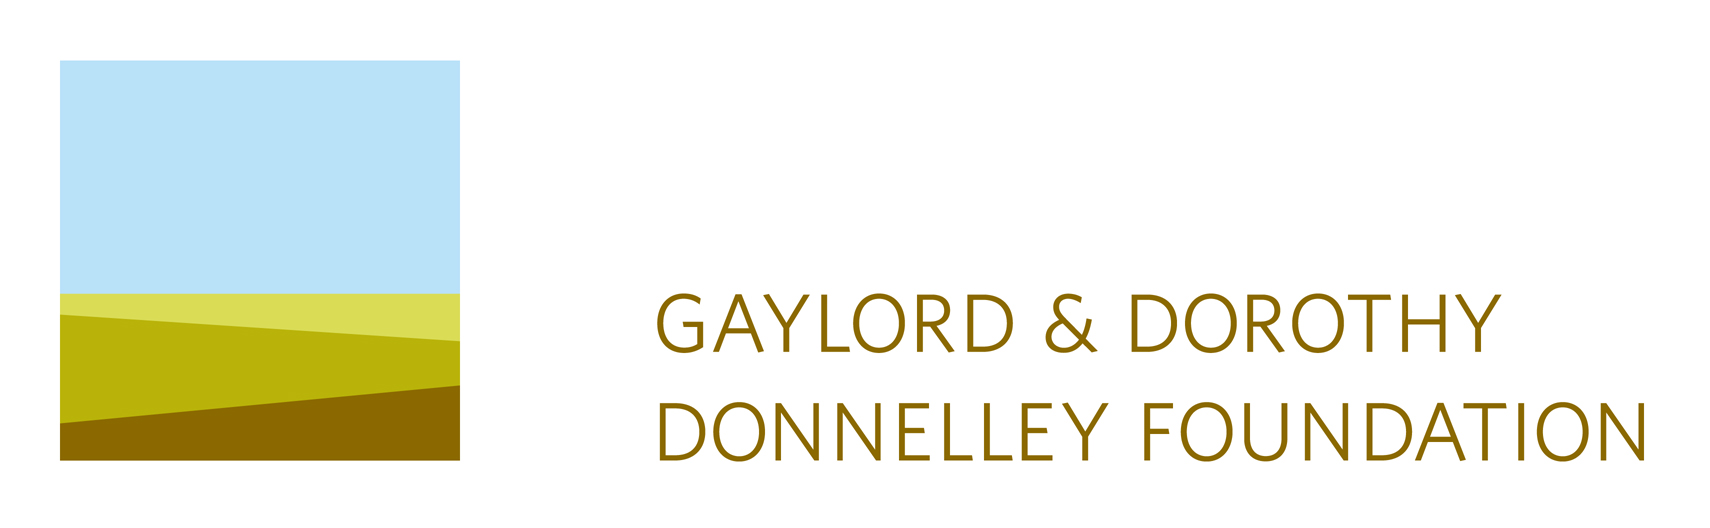 Logo. Links to Gaylord & Dorothy Donnelley Foundation.